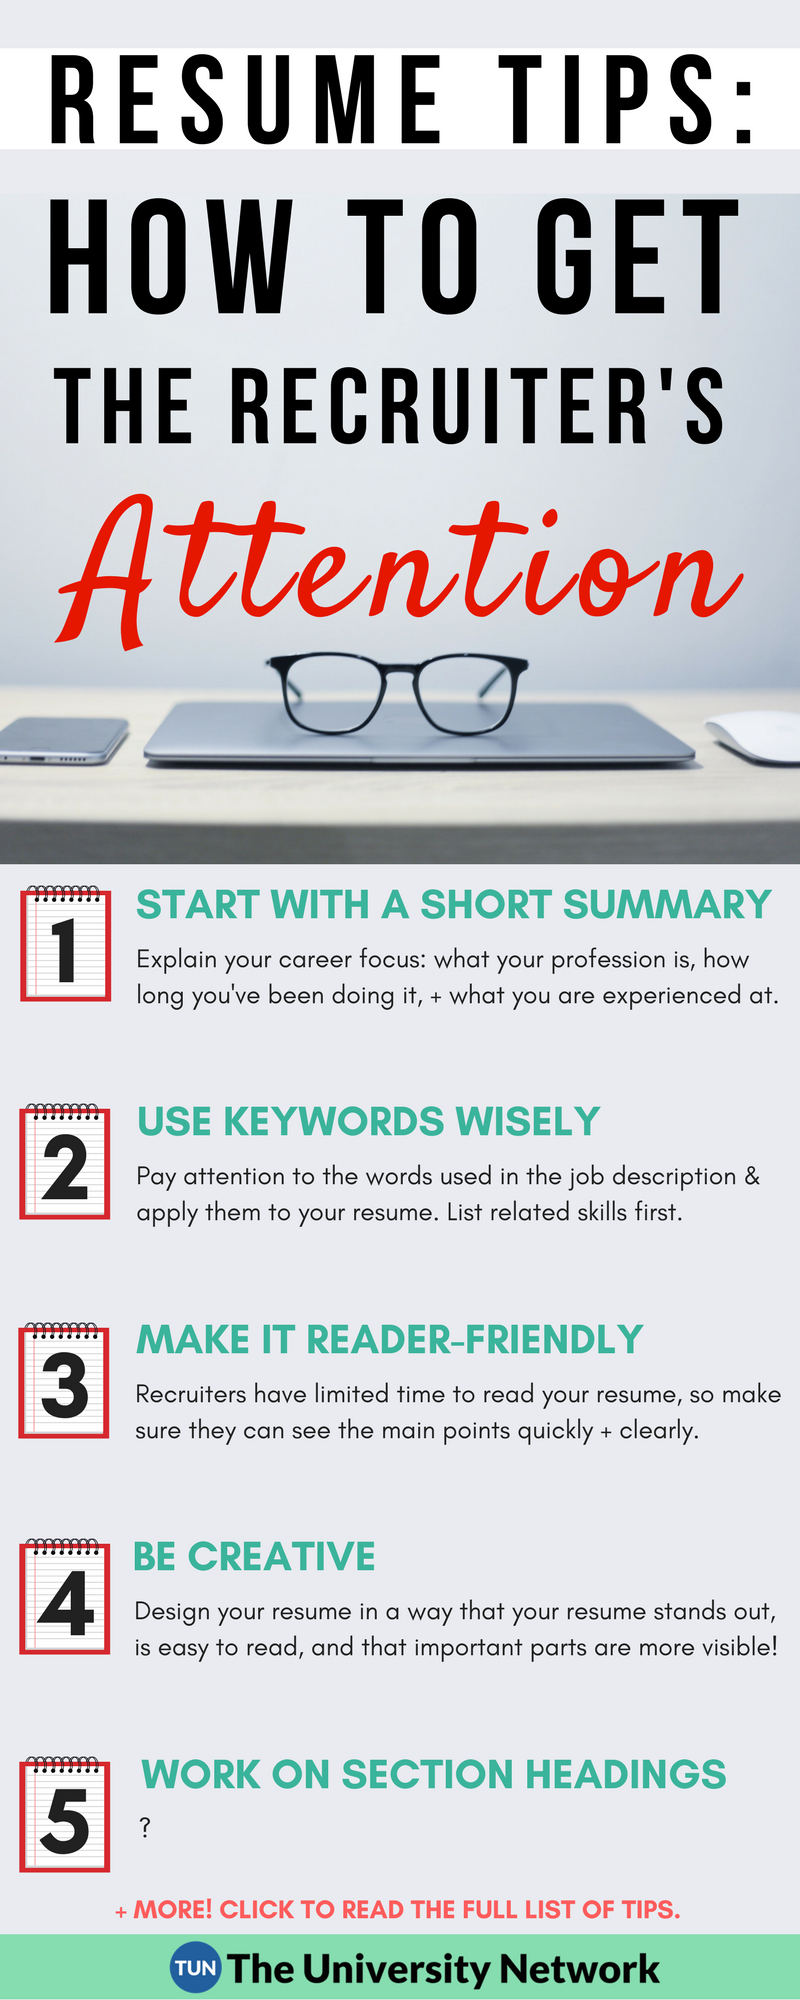 Words To Use For Resume Resume Tips How To Grab The Recruiter's Attention  The College .